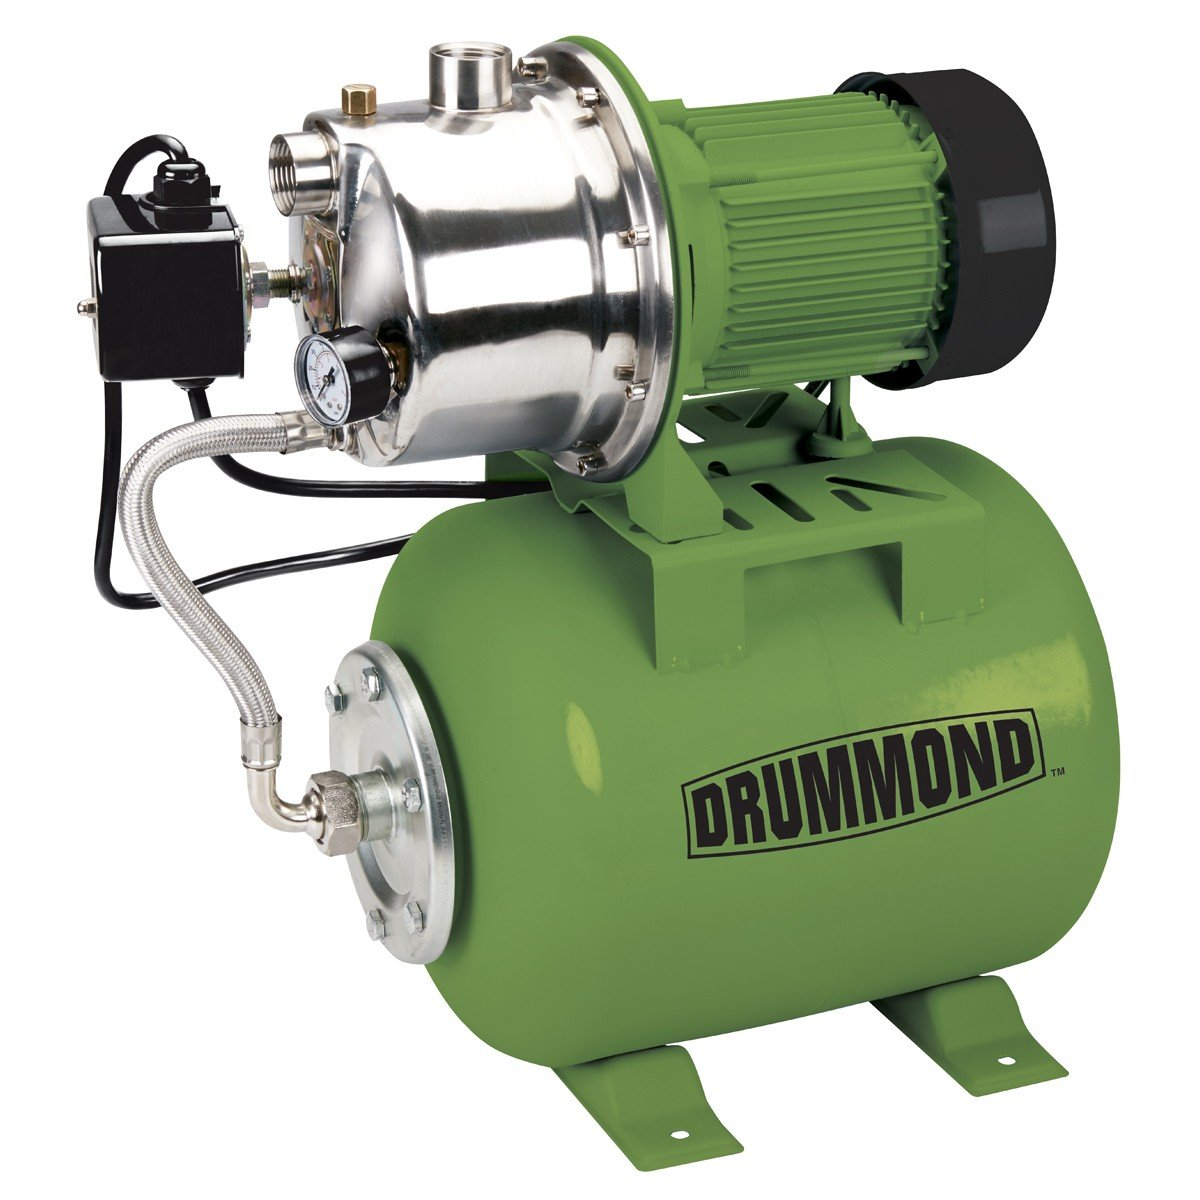 shallow well pumps amazon com1 hp stainless steel shallow well pump and tank with pressure control switch 950 gph